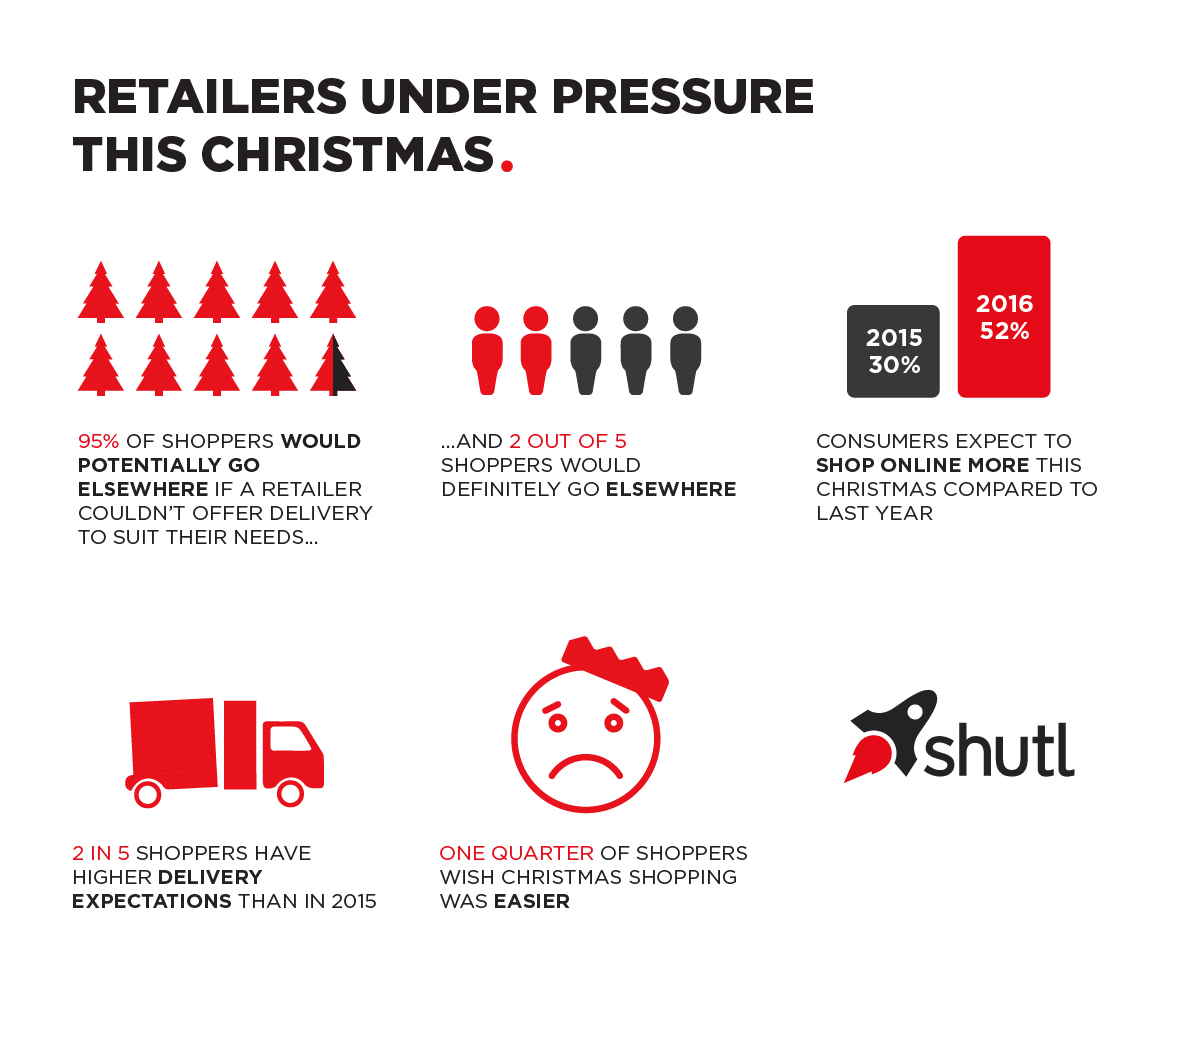 """Delivery options will determine choice of online retailer this Christmas,"" finds Shutl survey"